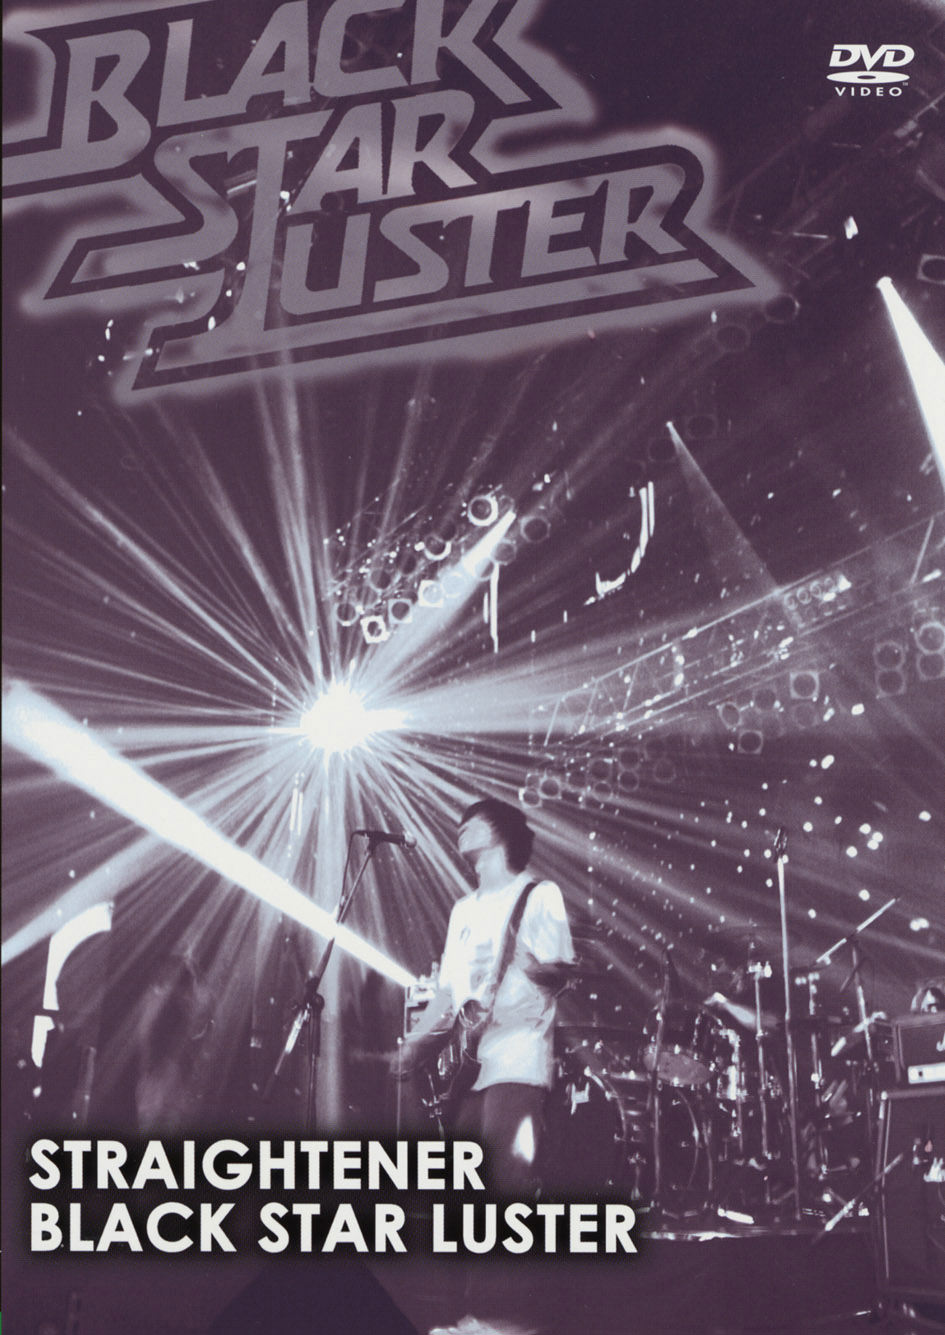 LIVE DVD [BLACK STAR LUSTER]